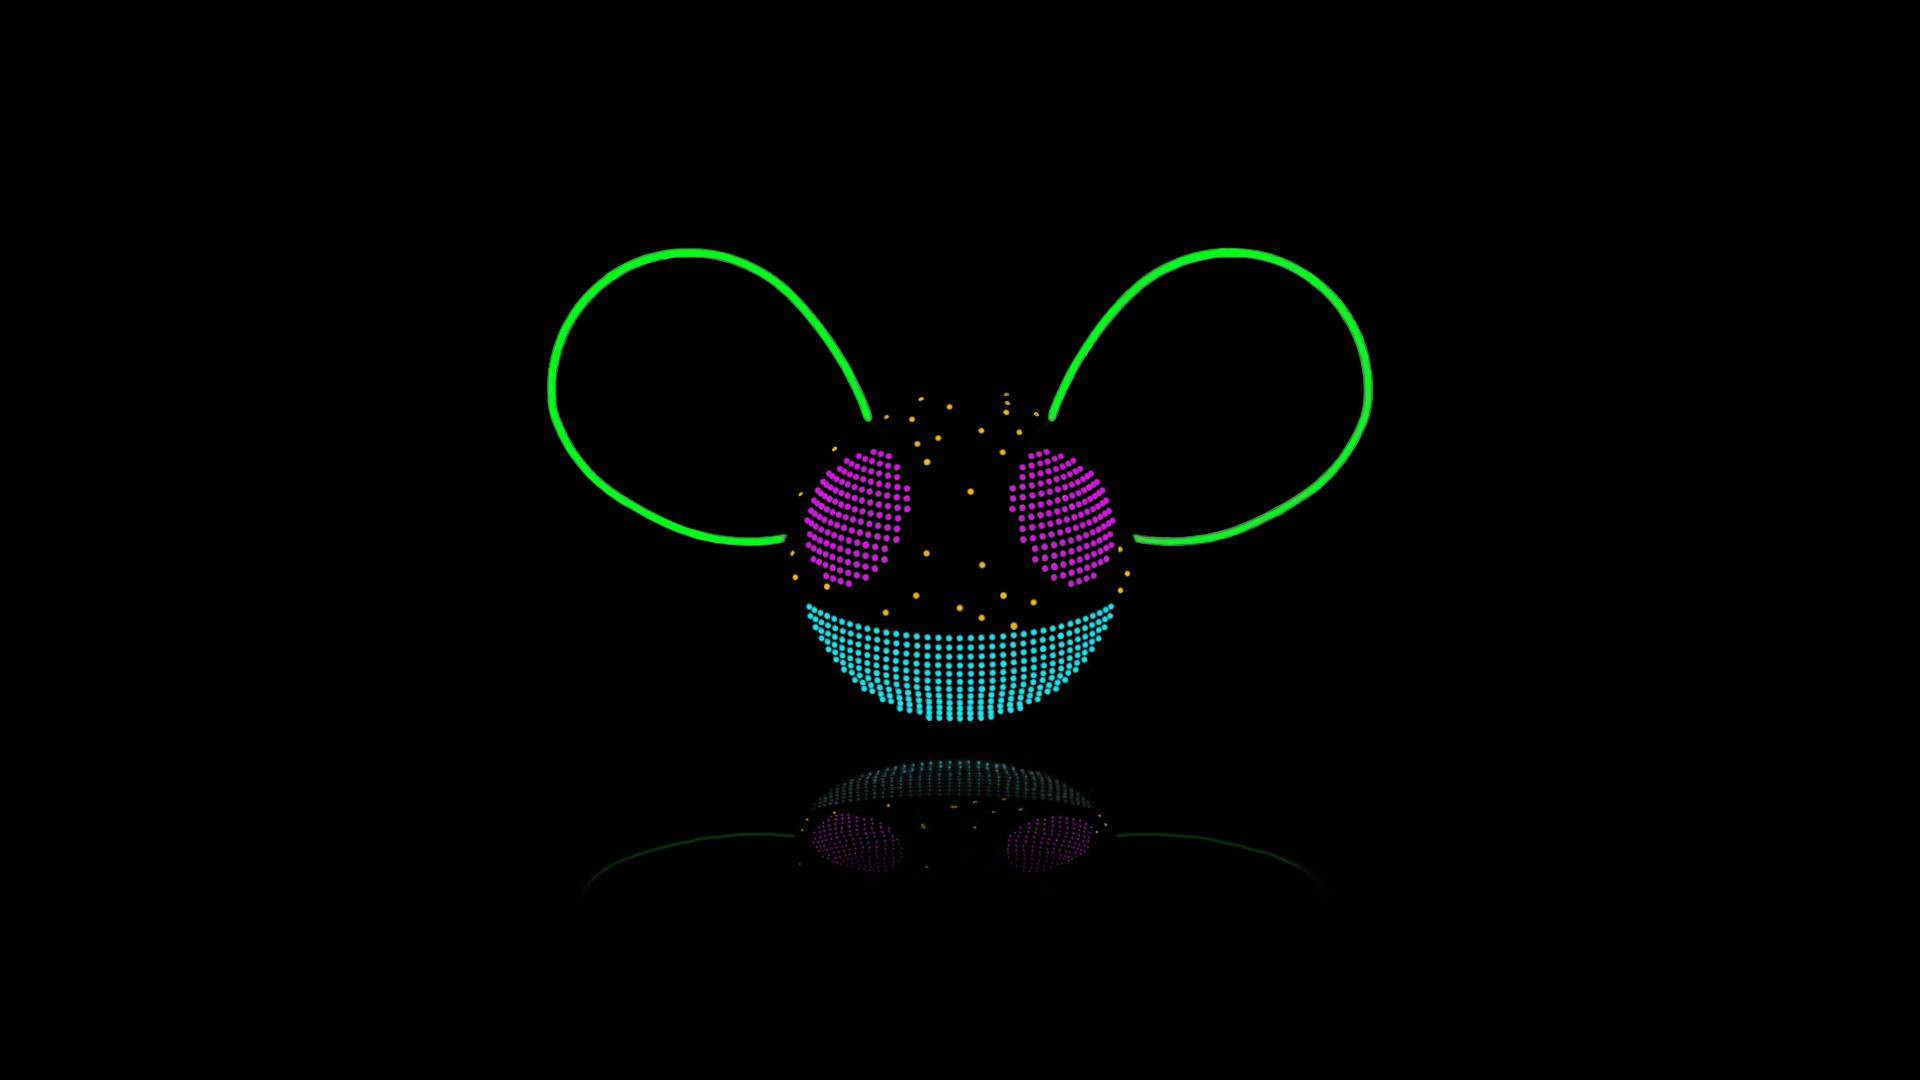 Electro House Music Wallpaper (64+ images)  Mobile Music Hd Wallpaper